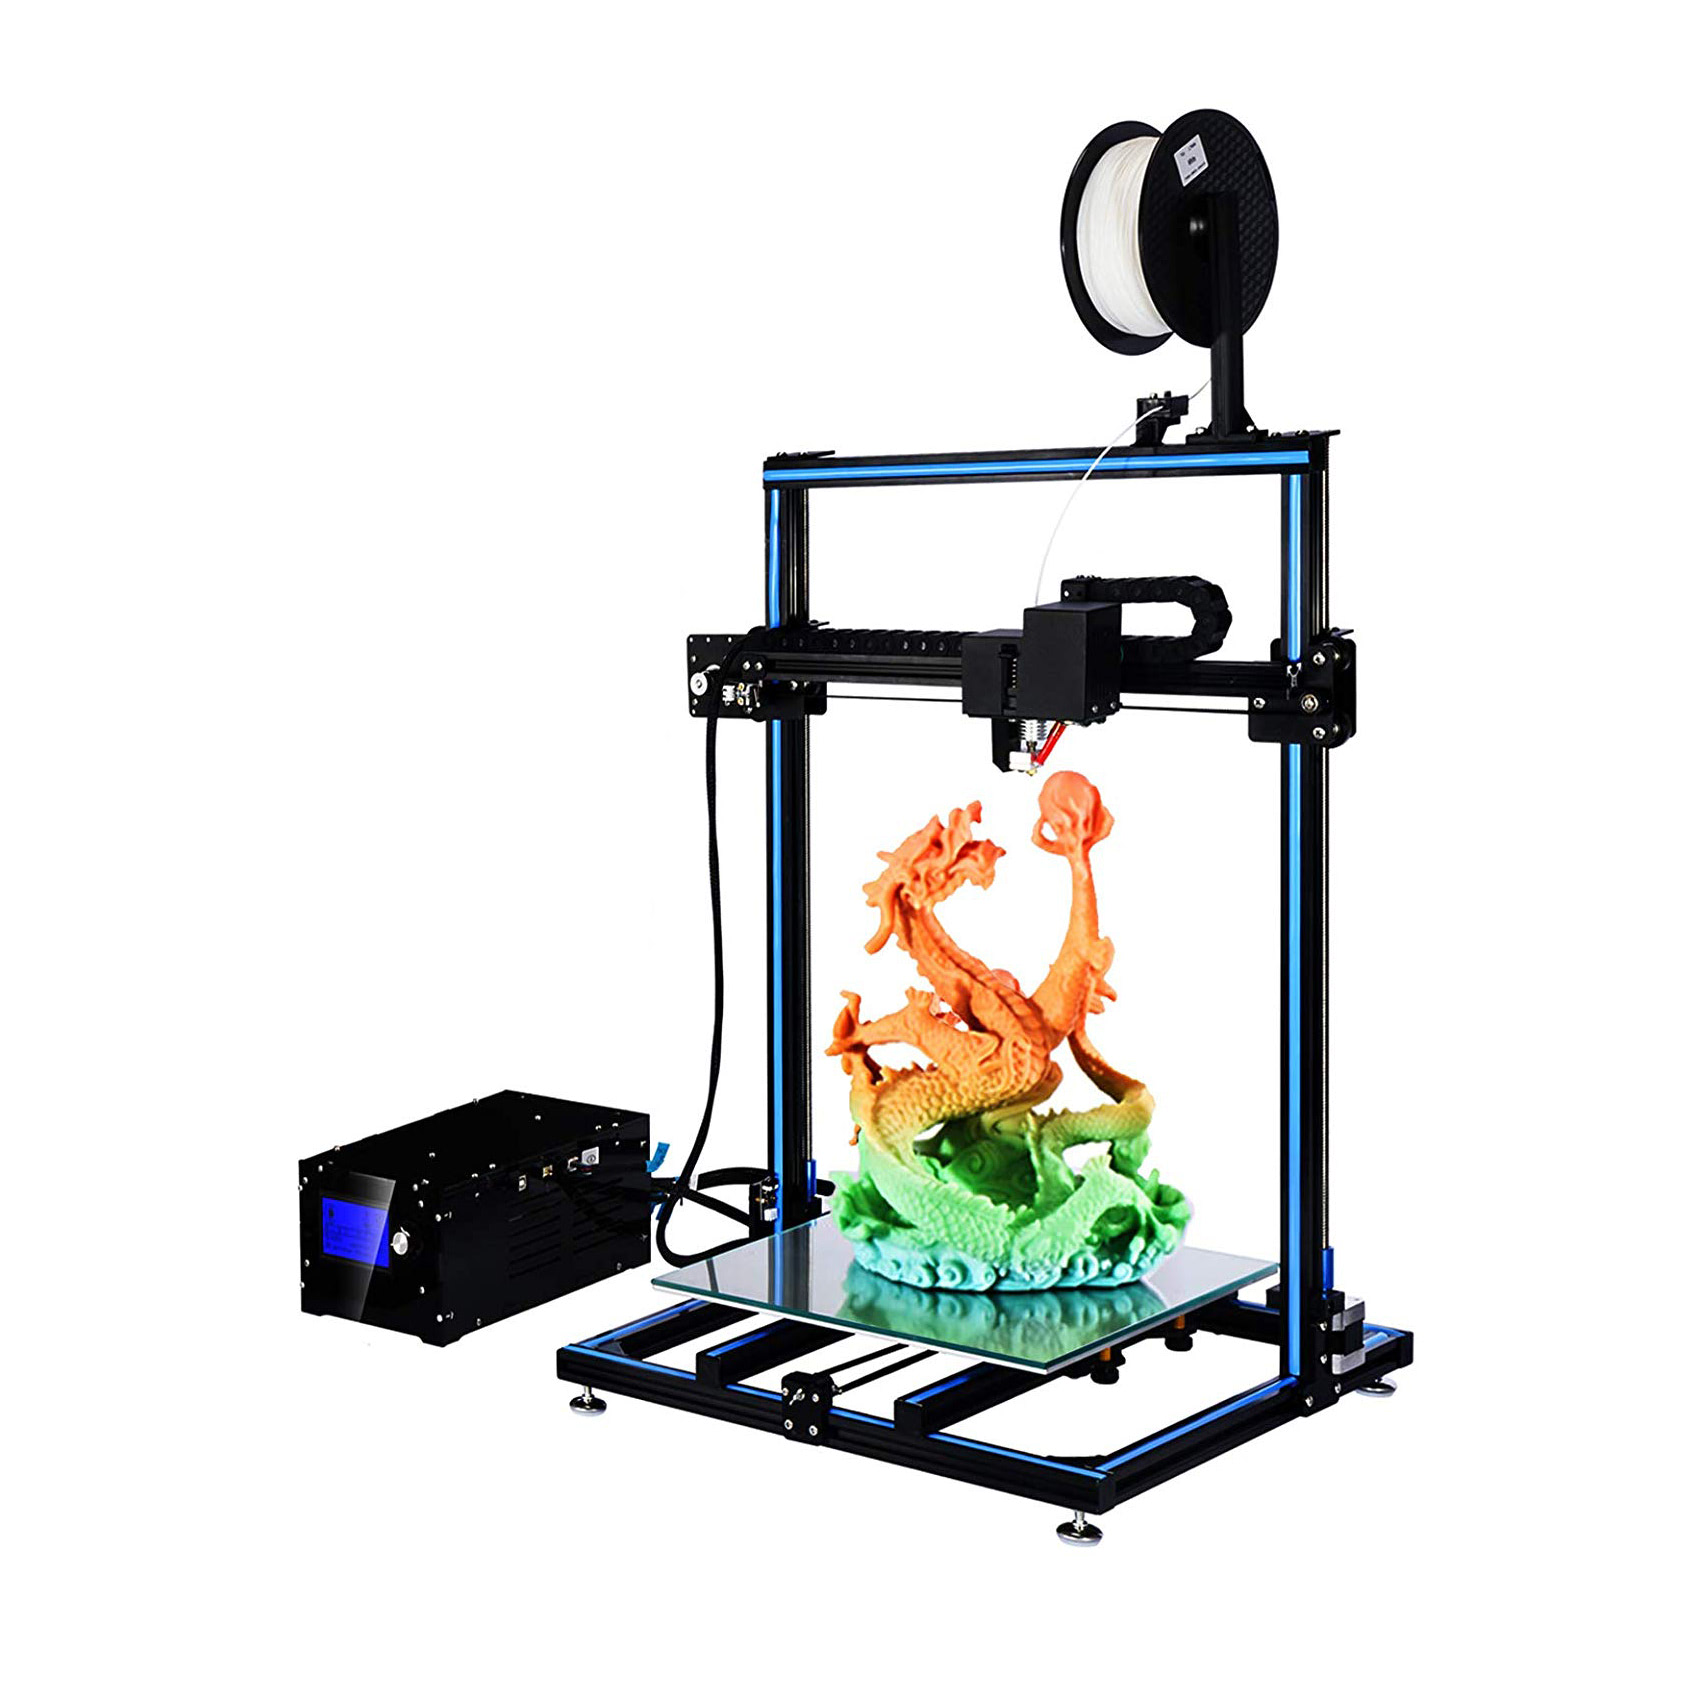 Best Rated 3D Printers you can buy on Amazon - September